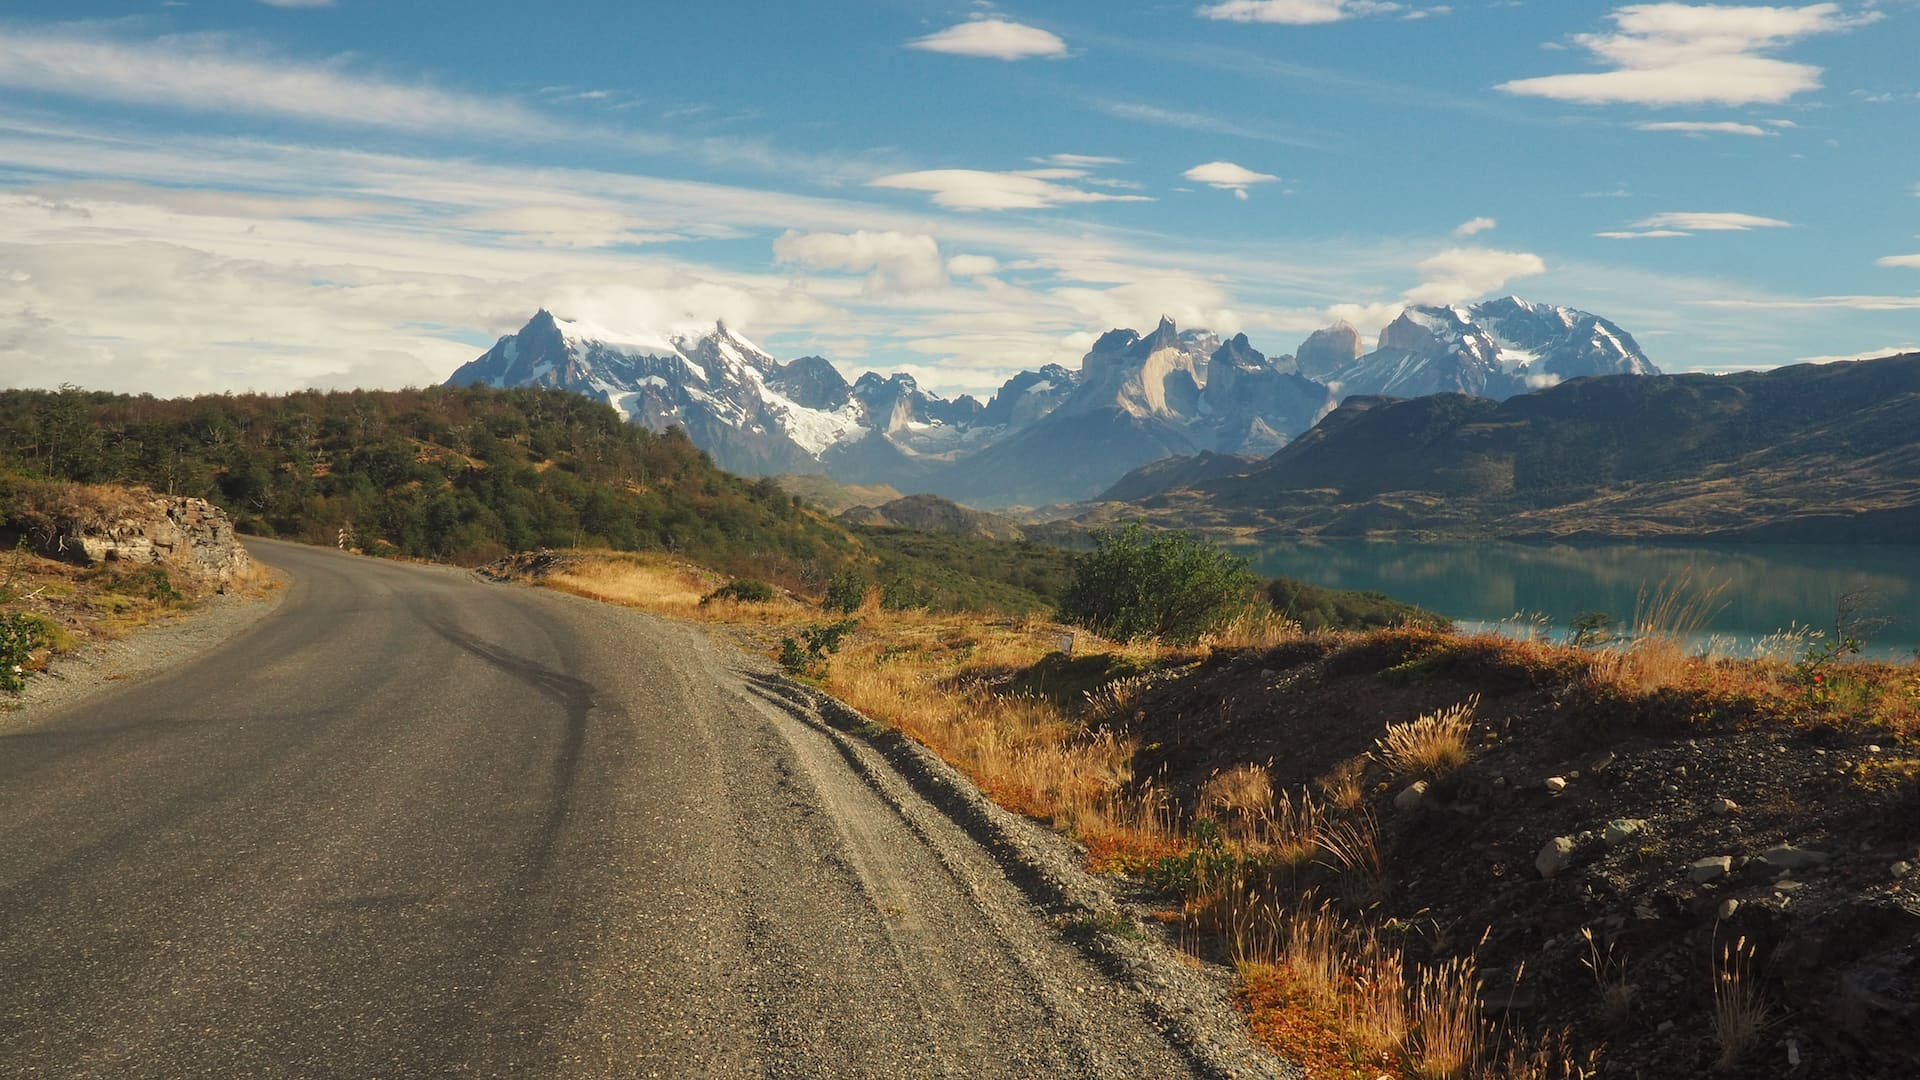 View of the Cordillera Paine from the Y-290 road